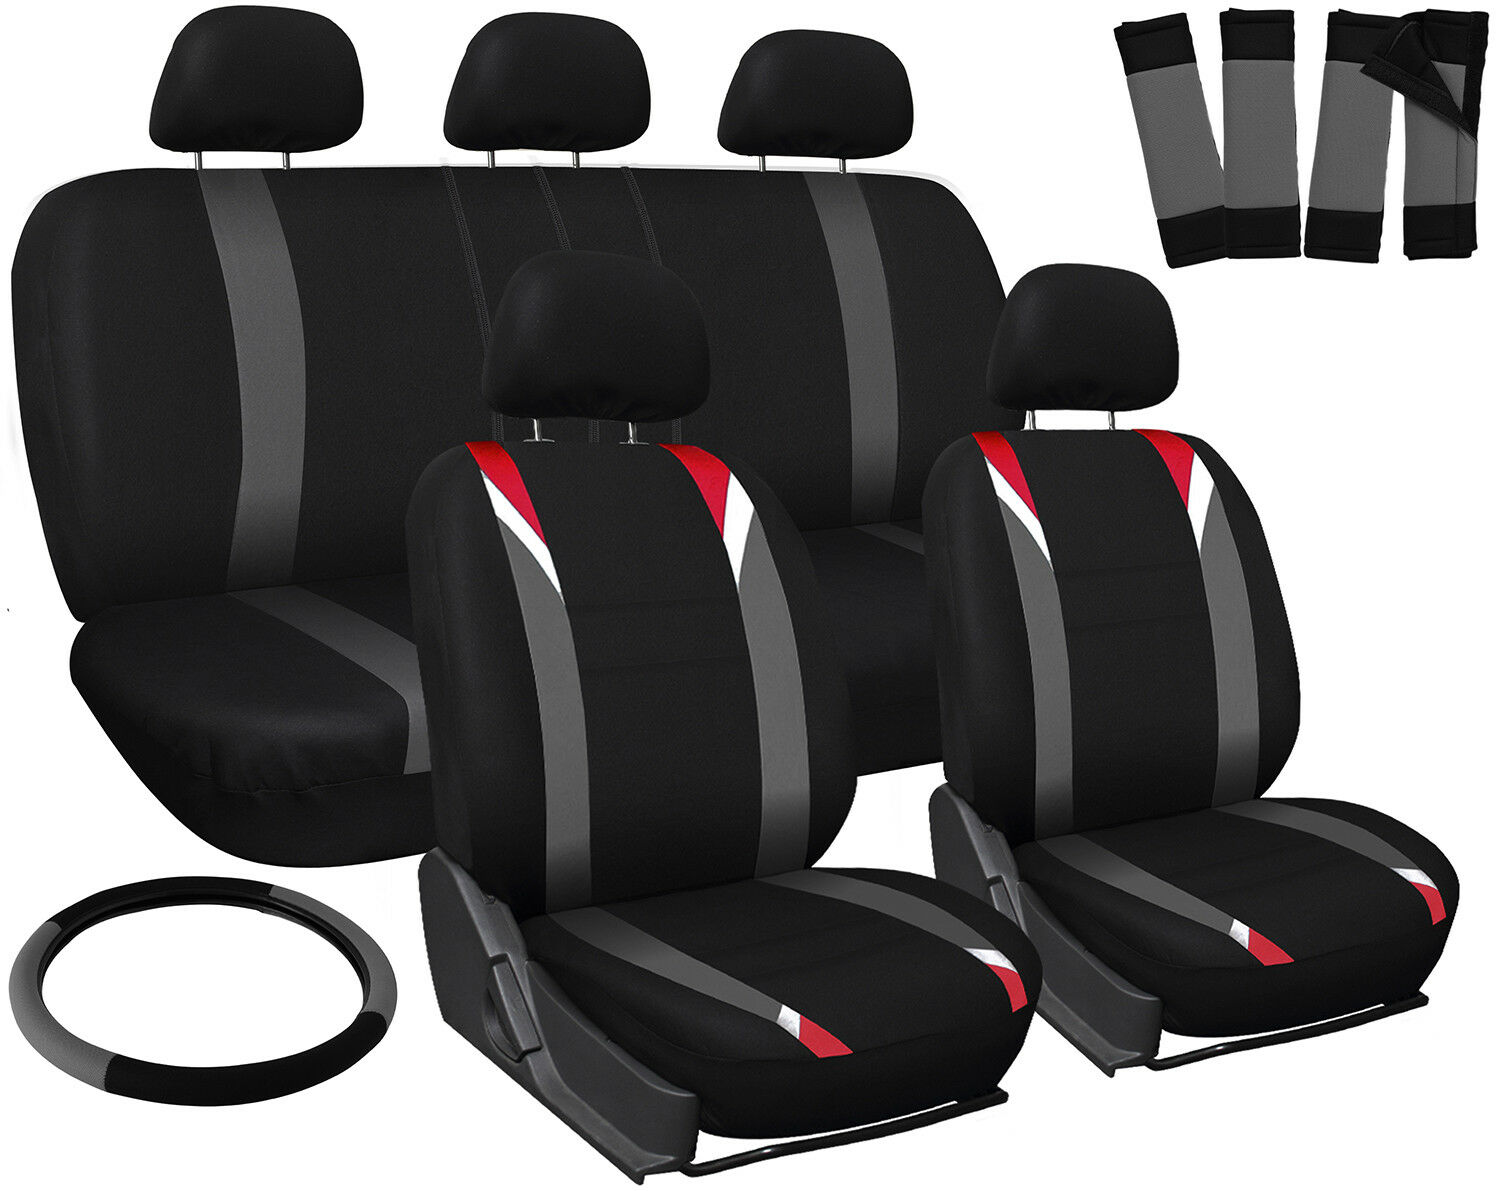 Car Seat Covers For Nissan Altima Red Gray Black W Steering Wheel Belt 1 Of 4Only 0 Available